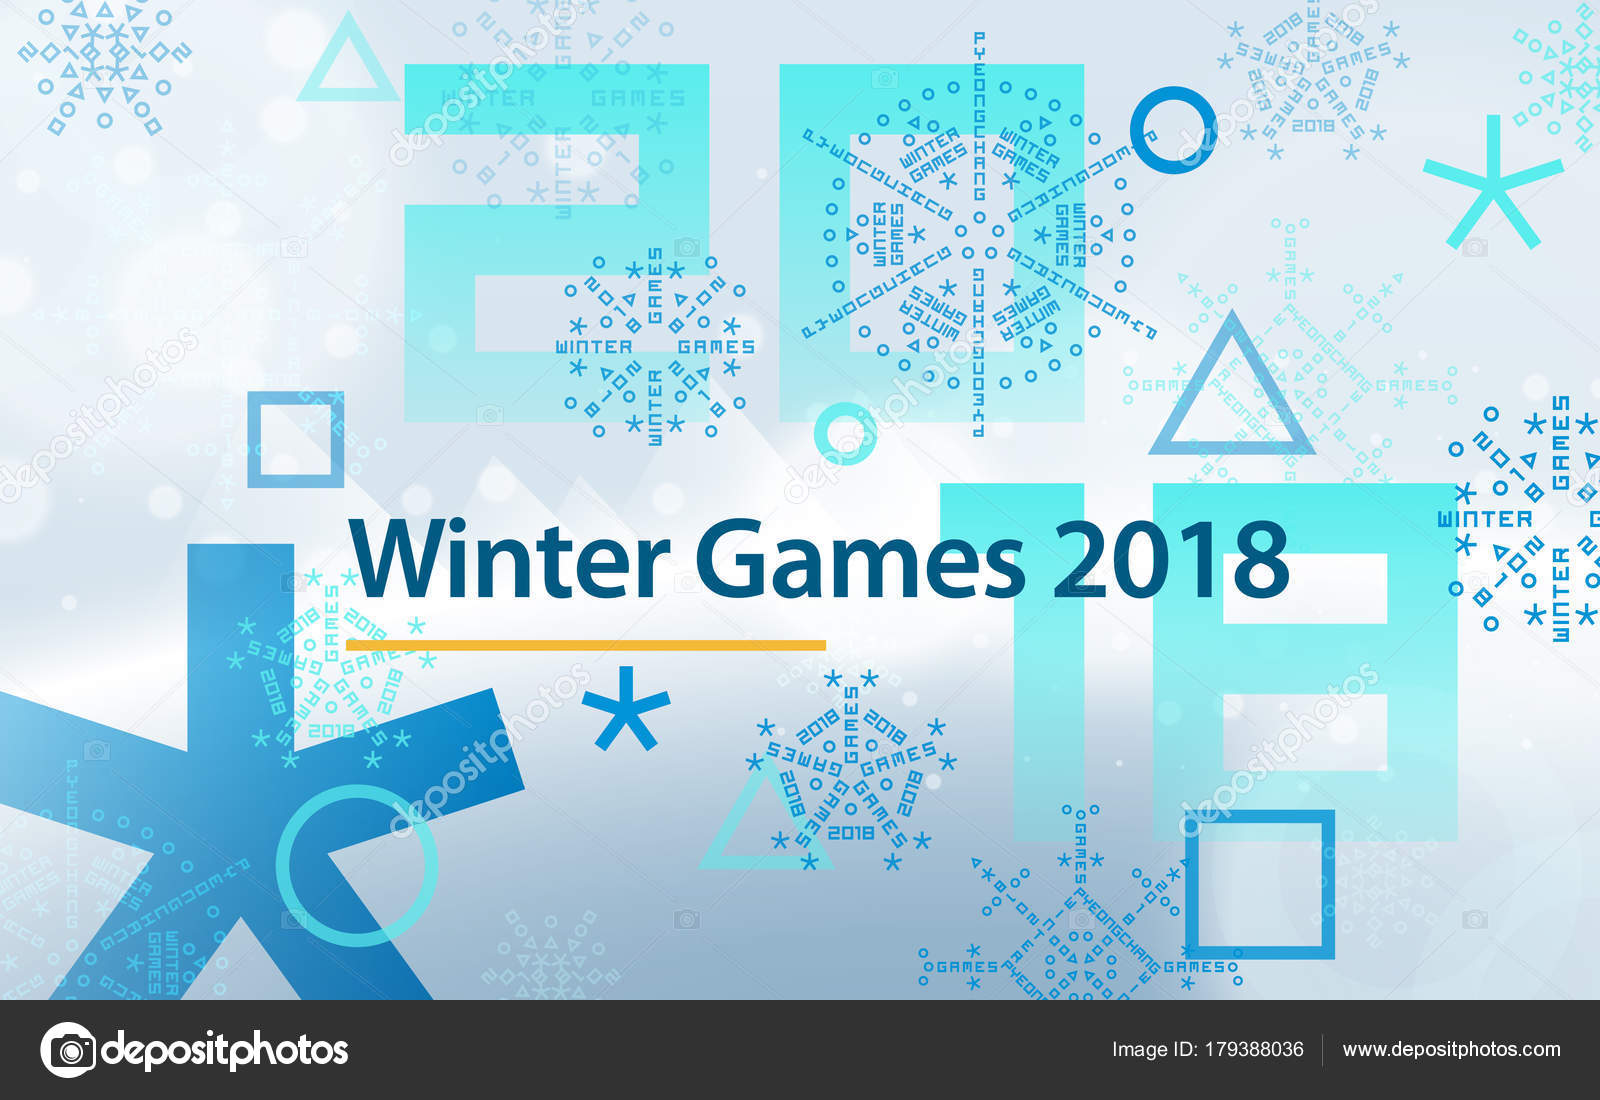 Winter Sports Games In Republic Of Korea 2018 Light Blue Abstract